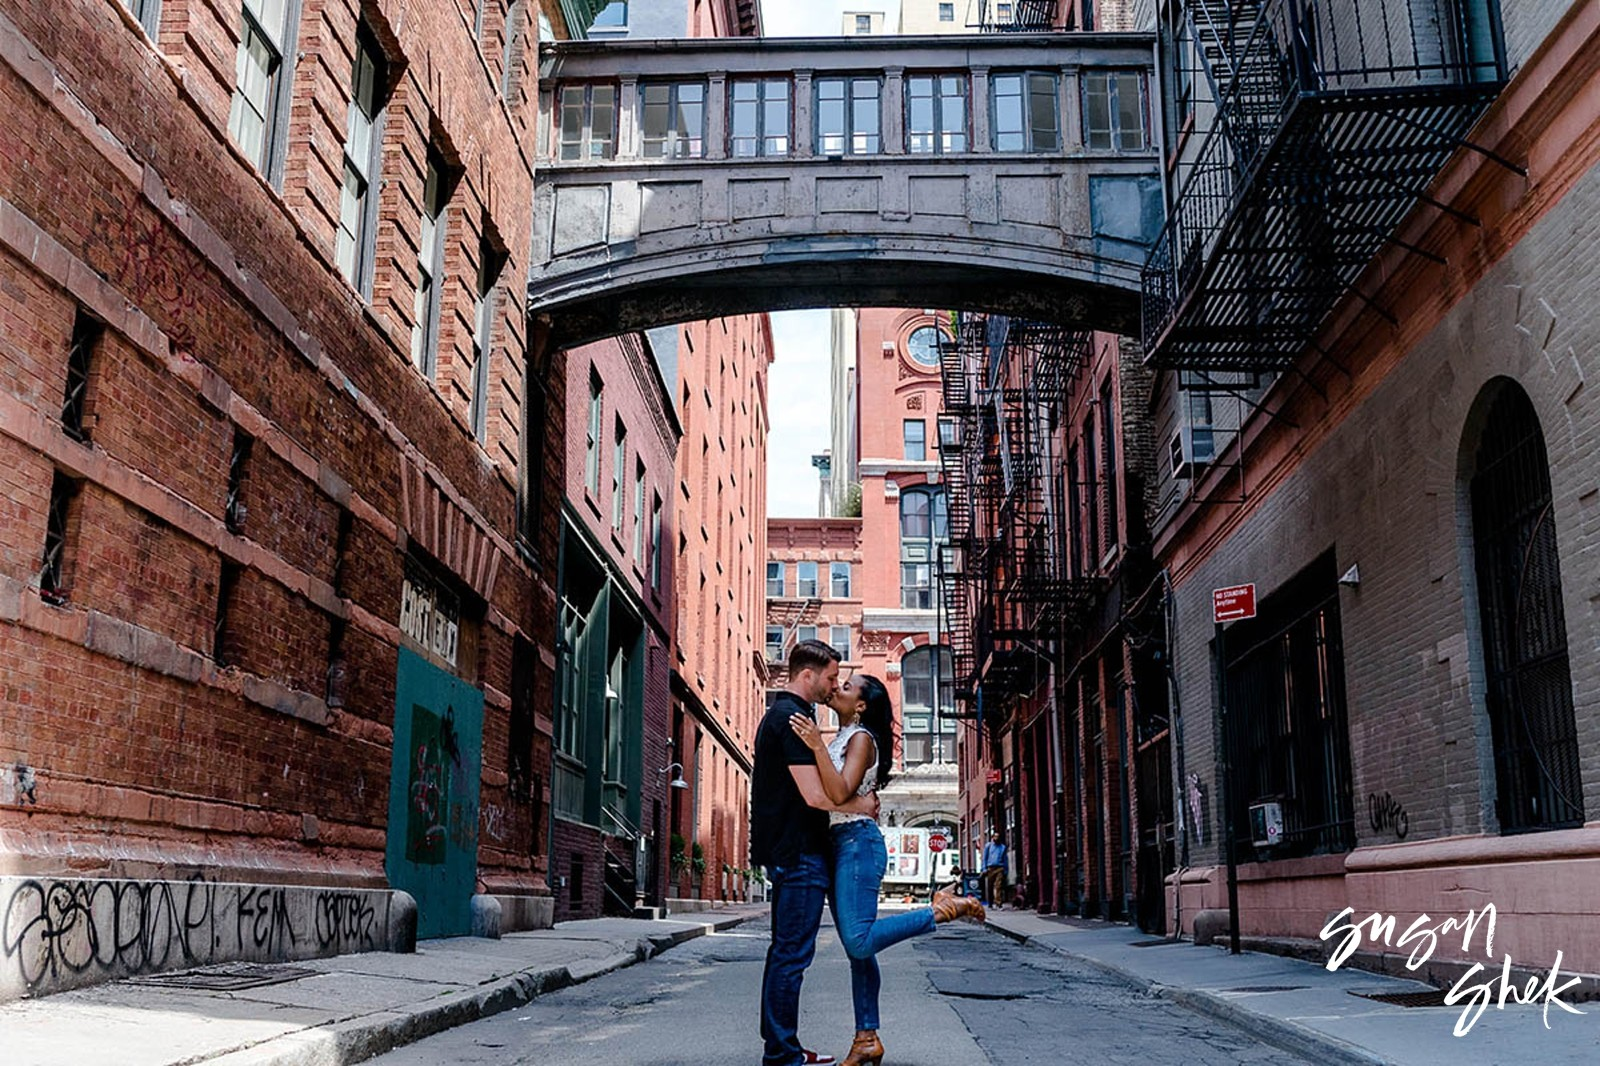 Staple Street Engagement, Staple Street, Tribeca Engagement Shoot, NYC Engagement Photographer, Engagement Session, Engagement Photography, Engagement Photographer, NYC Wedding Photographer